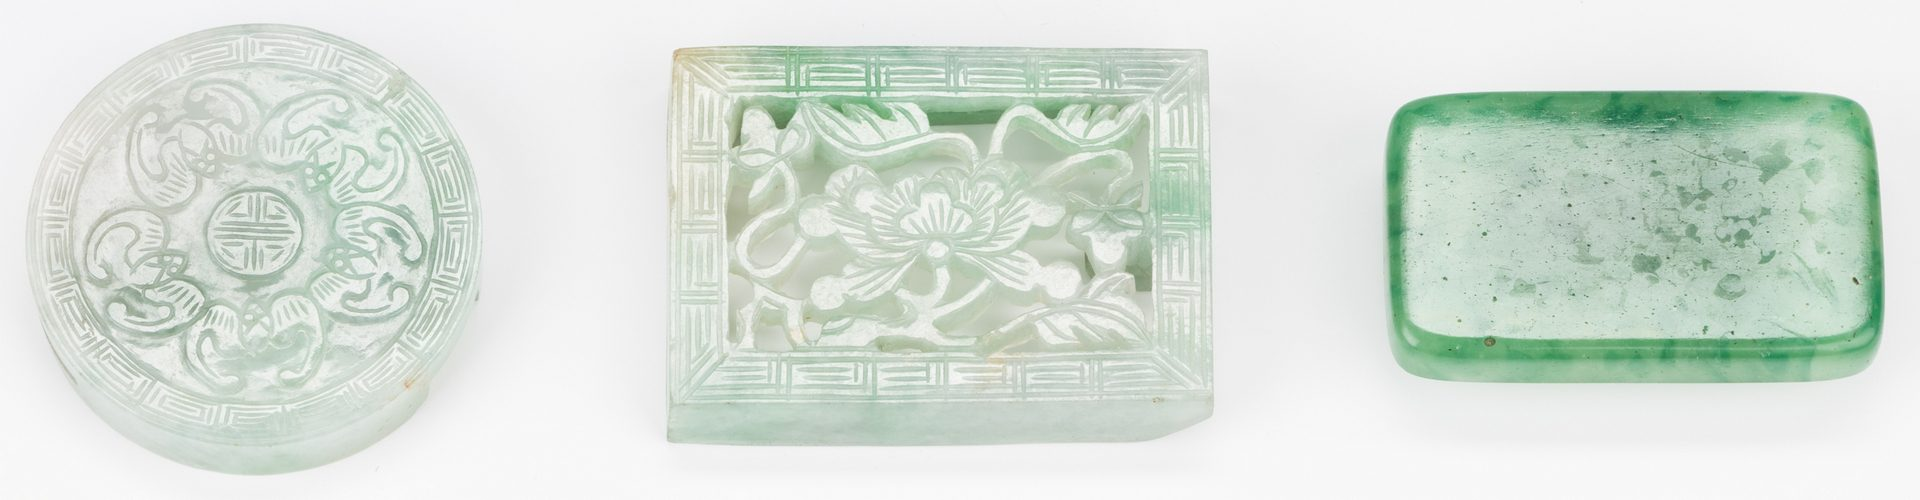 Lot 16: 3 Chinese Green Jade Belt Buckles